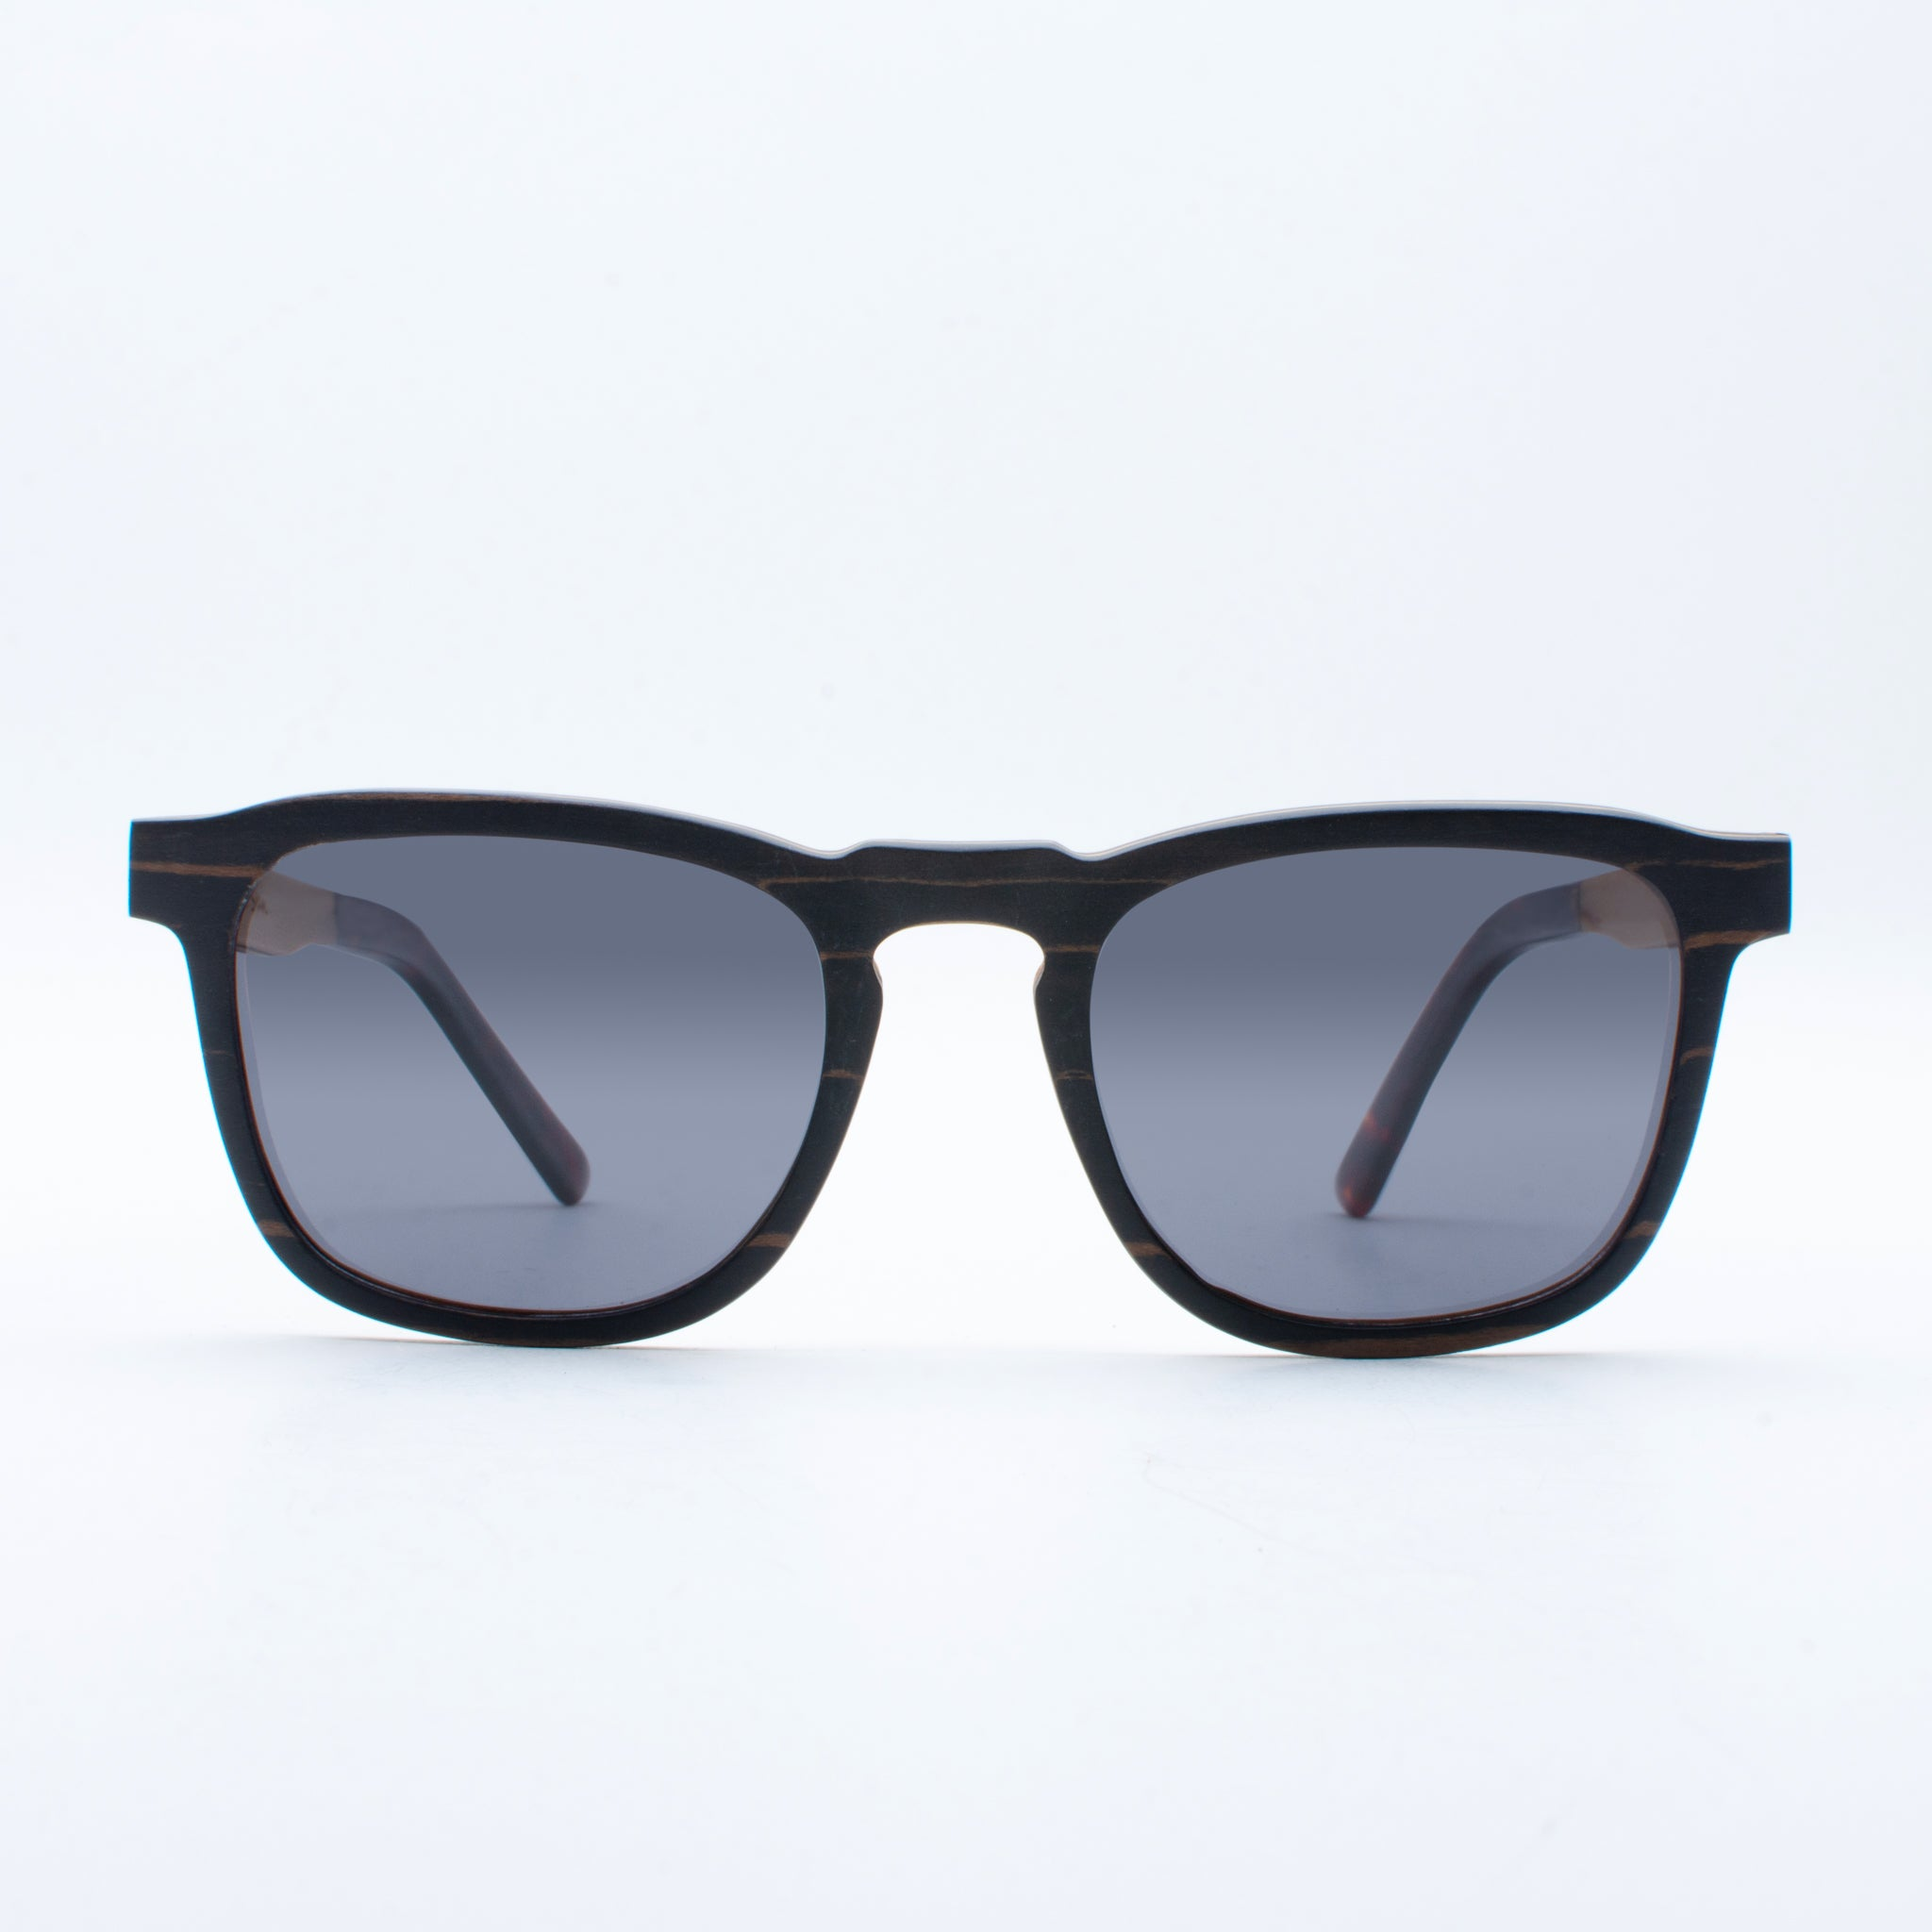 WOODEN SUNGLASSES RAU EBONY SUKI